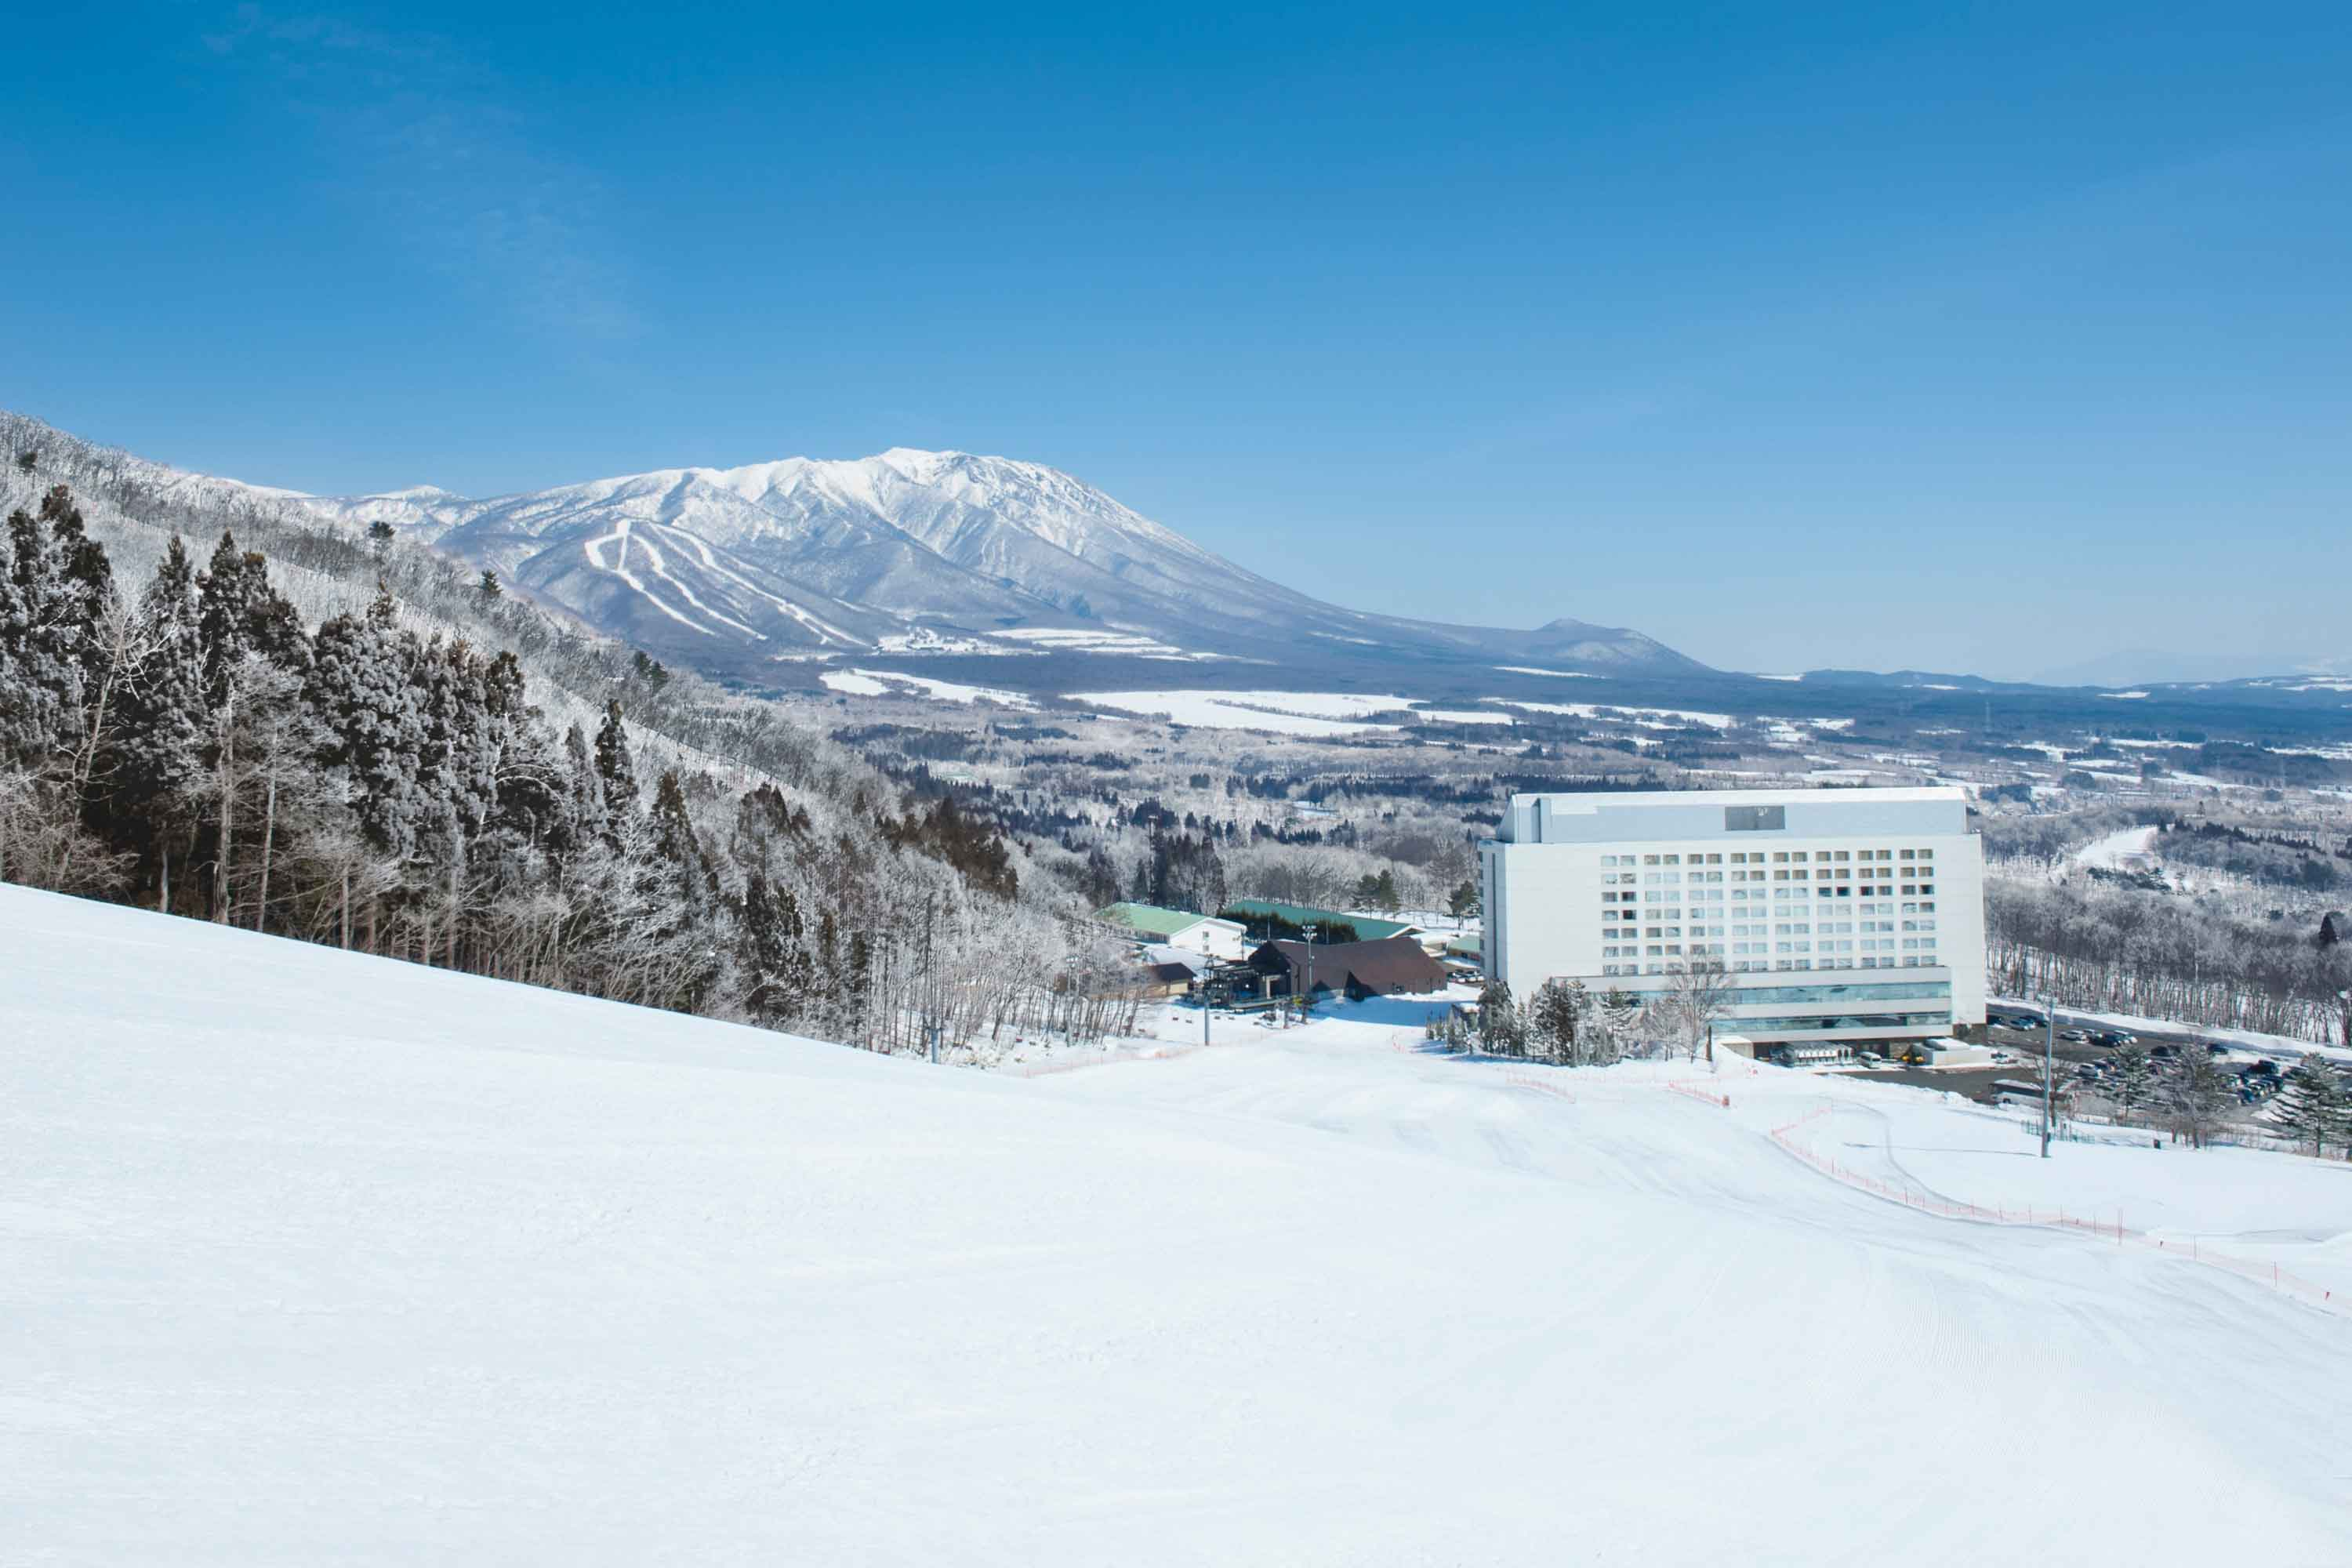 Ski Restort Shizukuishi in Japan